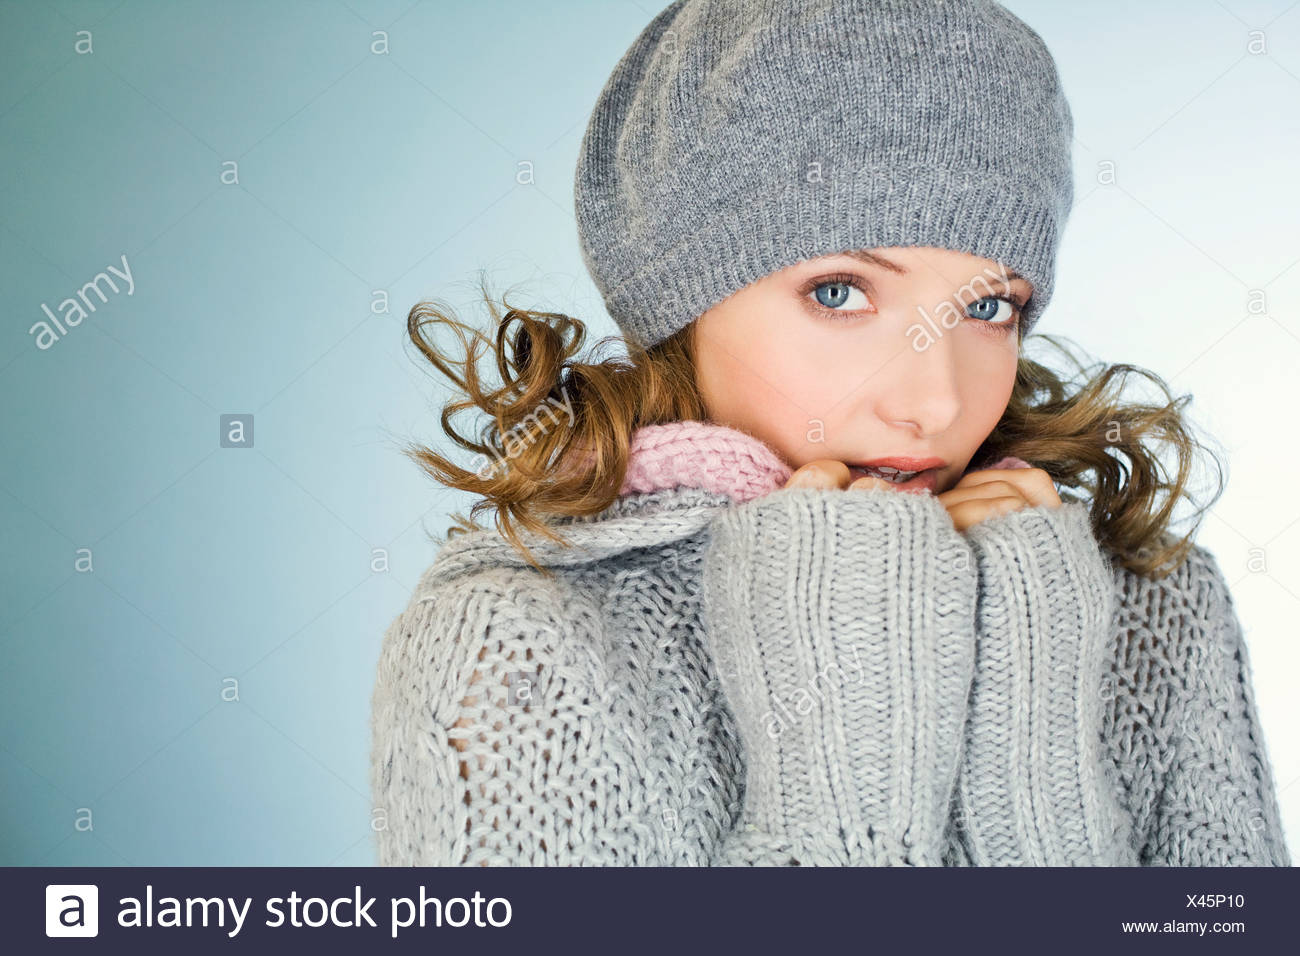 A young woman wearing a grey woollen hat, trying to keep warm - Stock Image